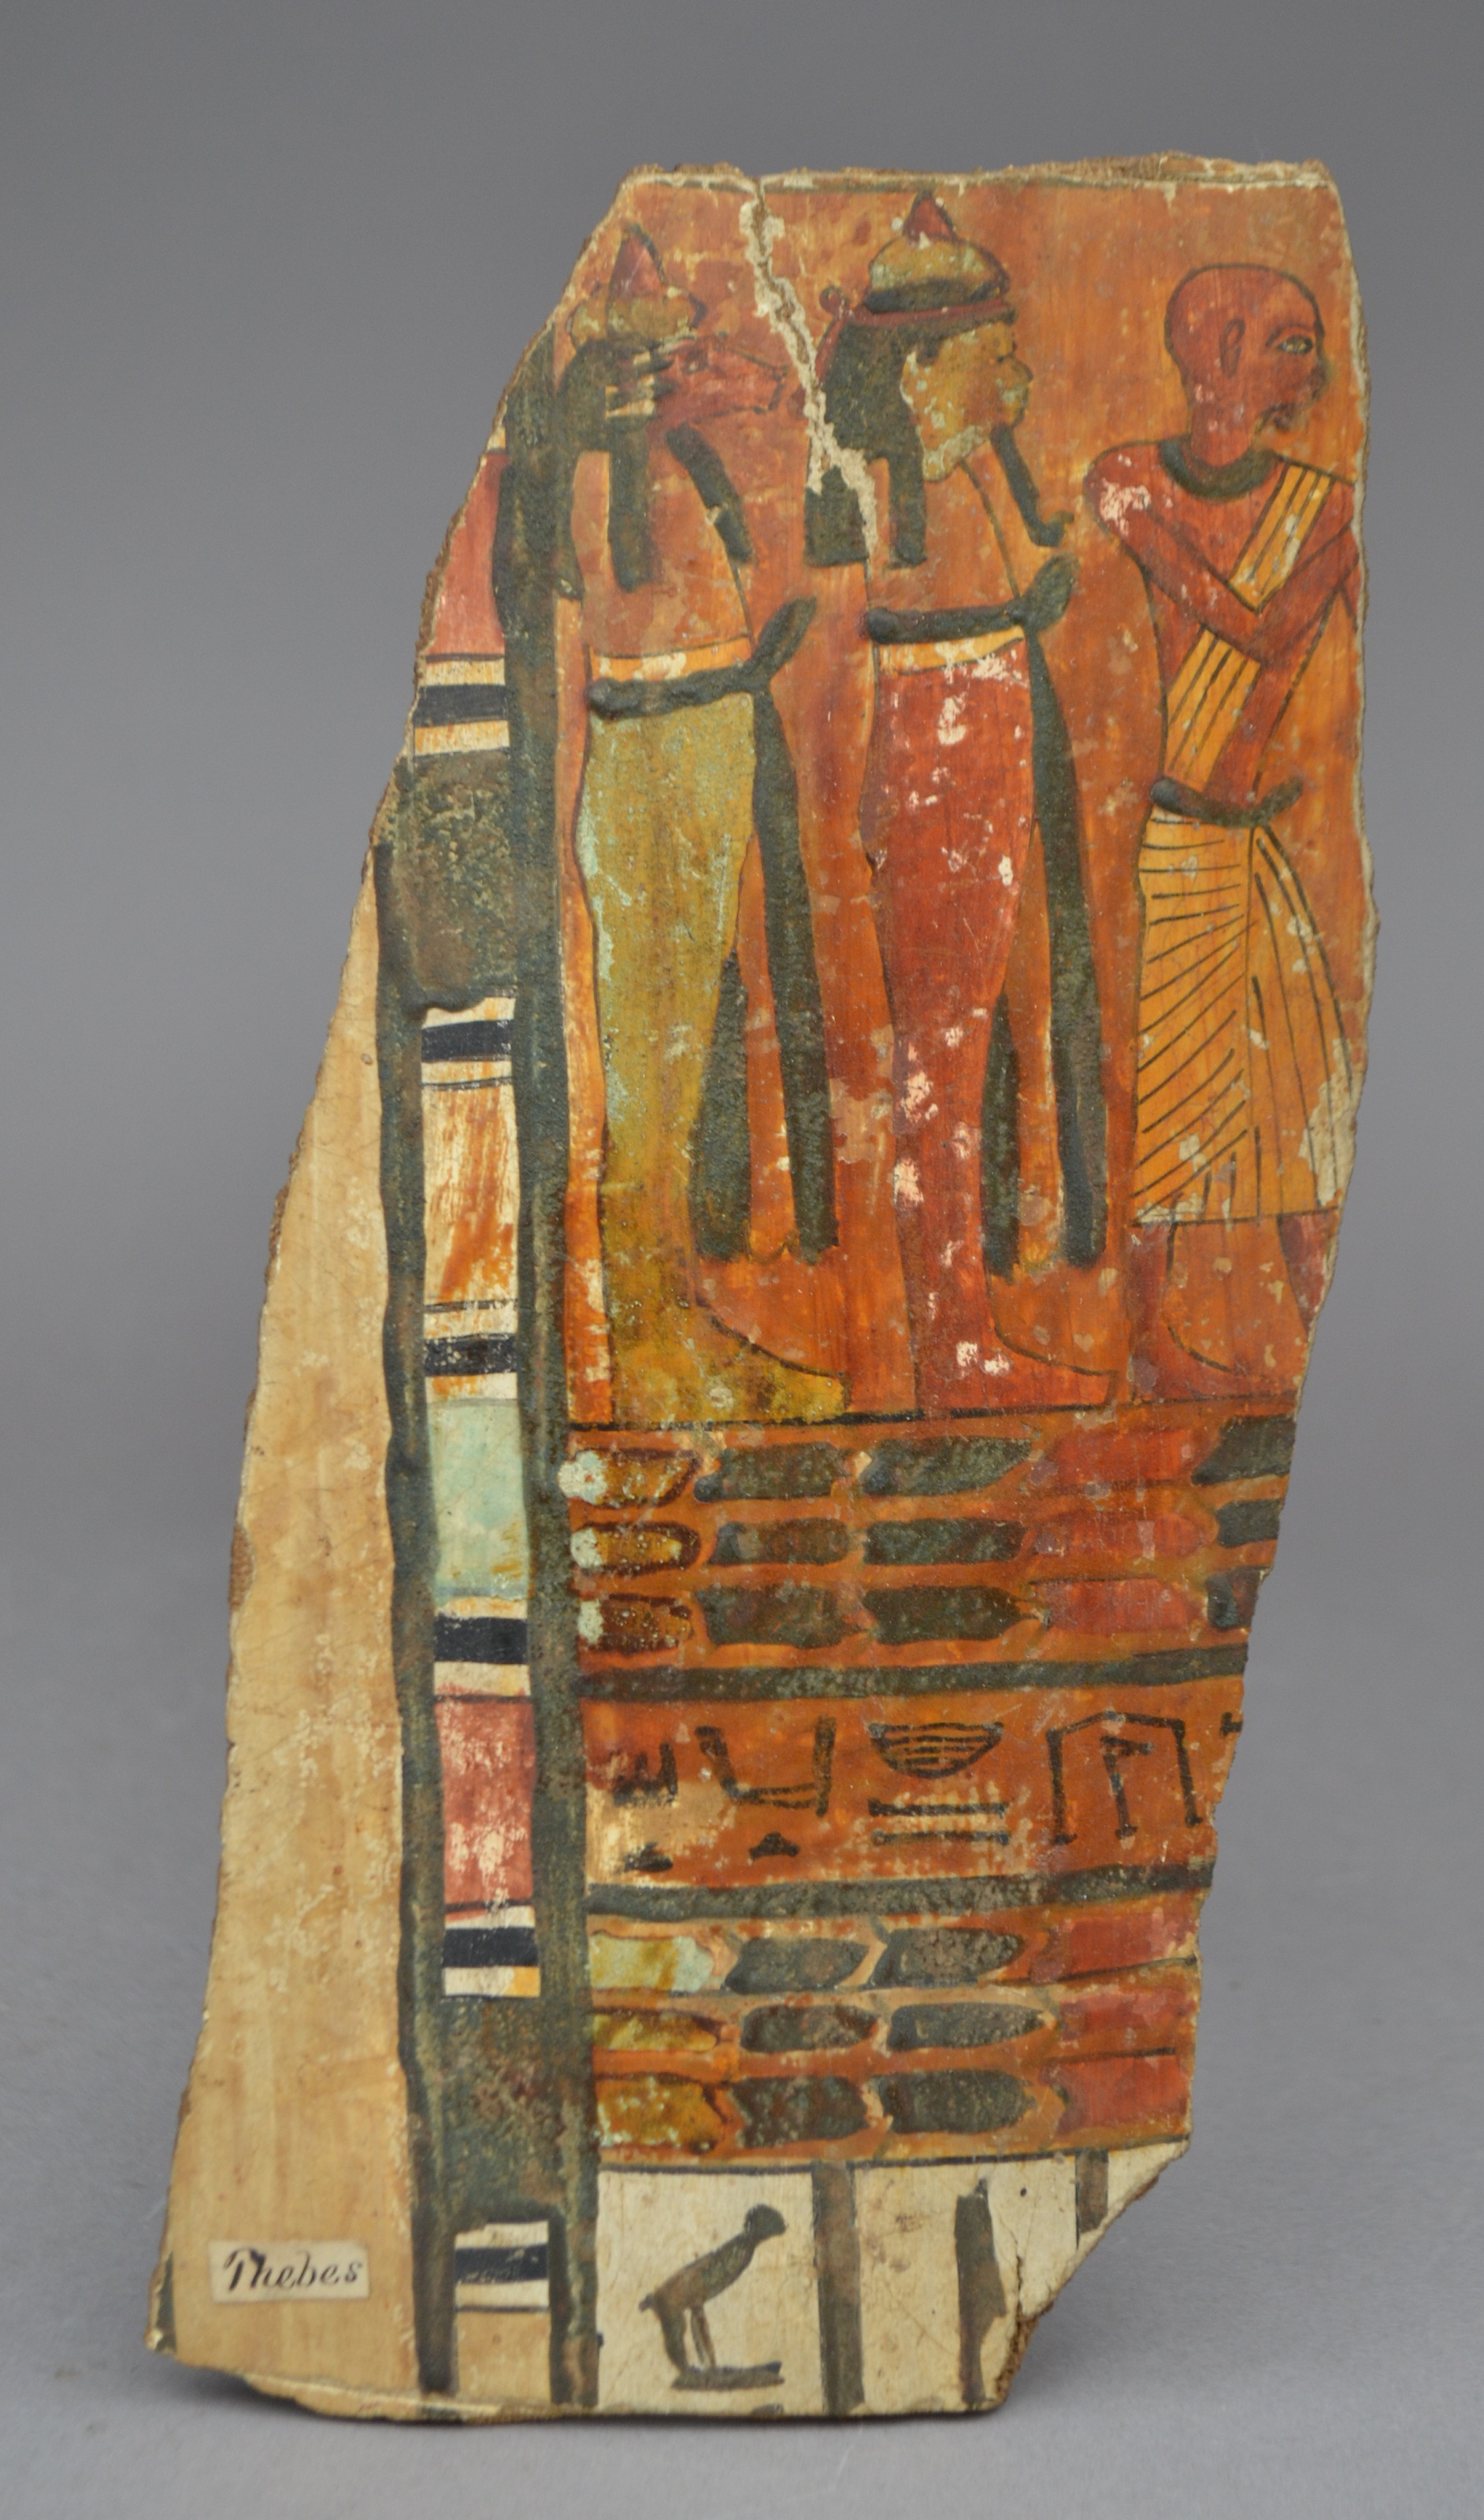 Mummy case fragment from the Ancient World collection (image from The Boston Children's Museum)